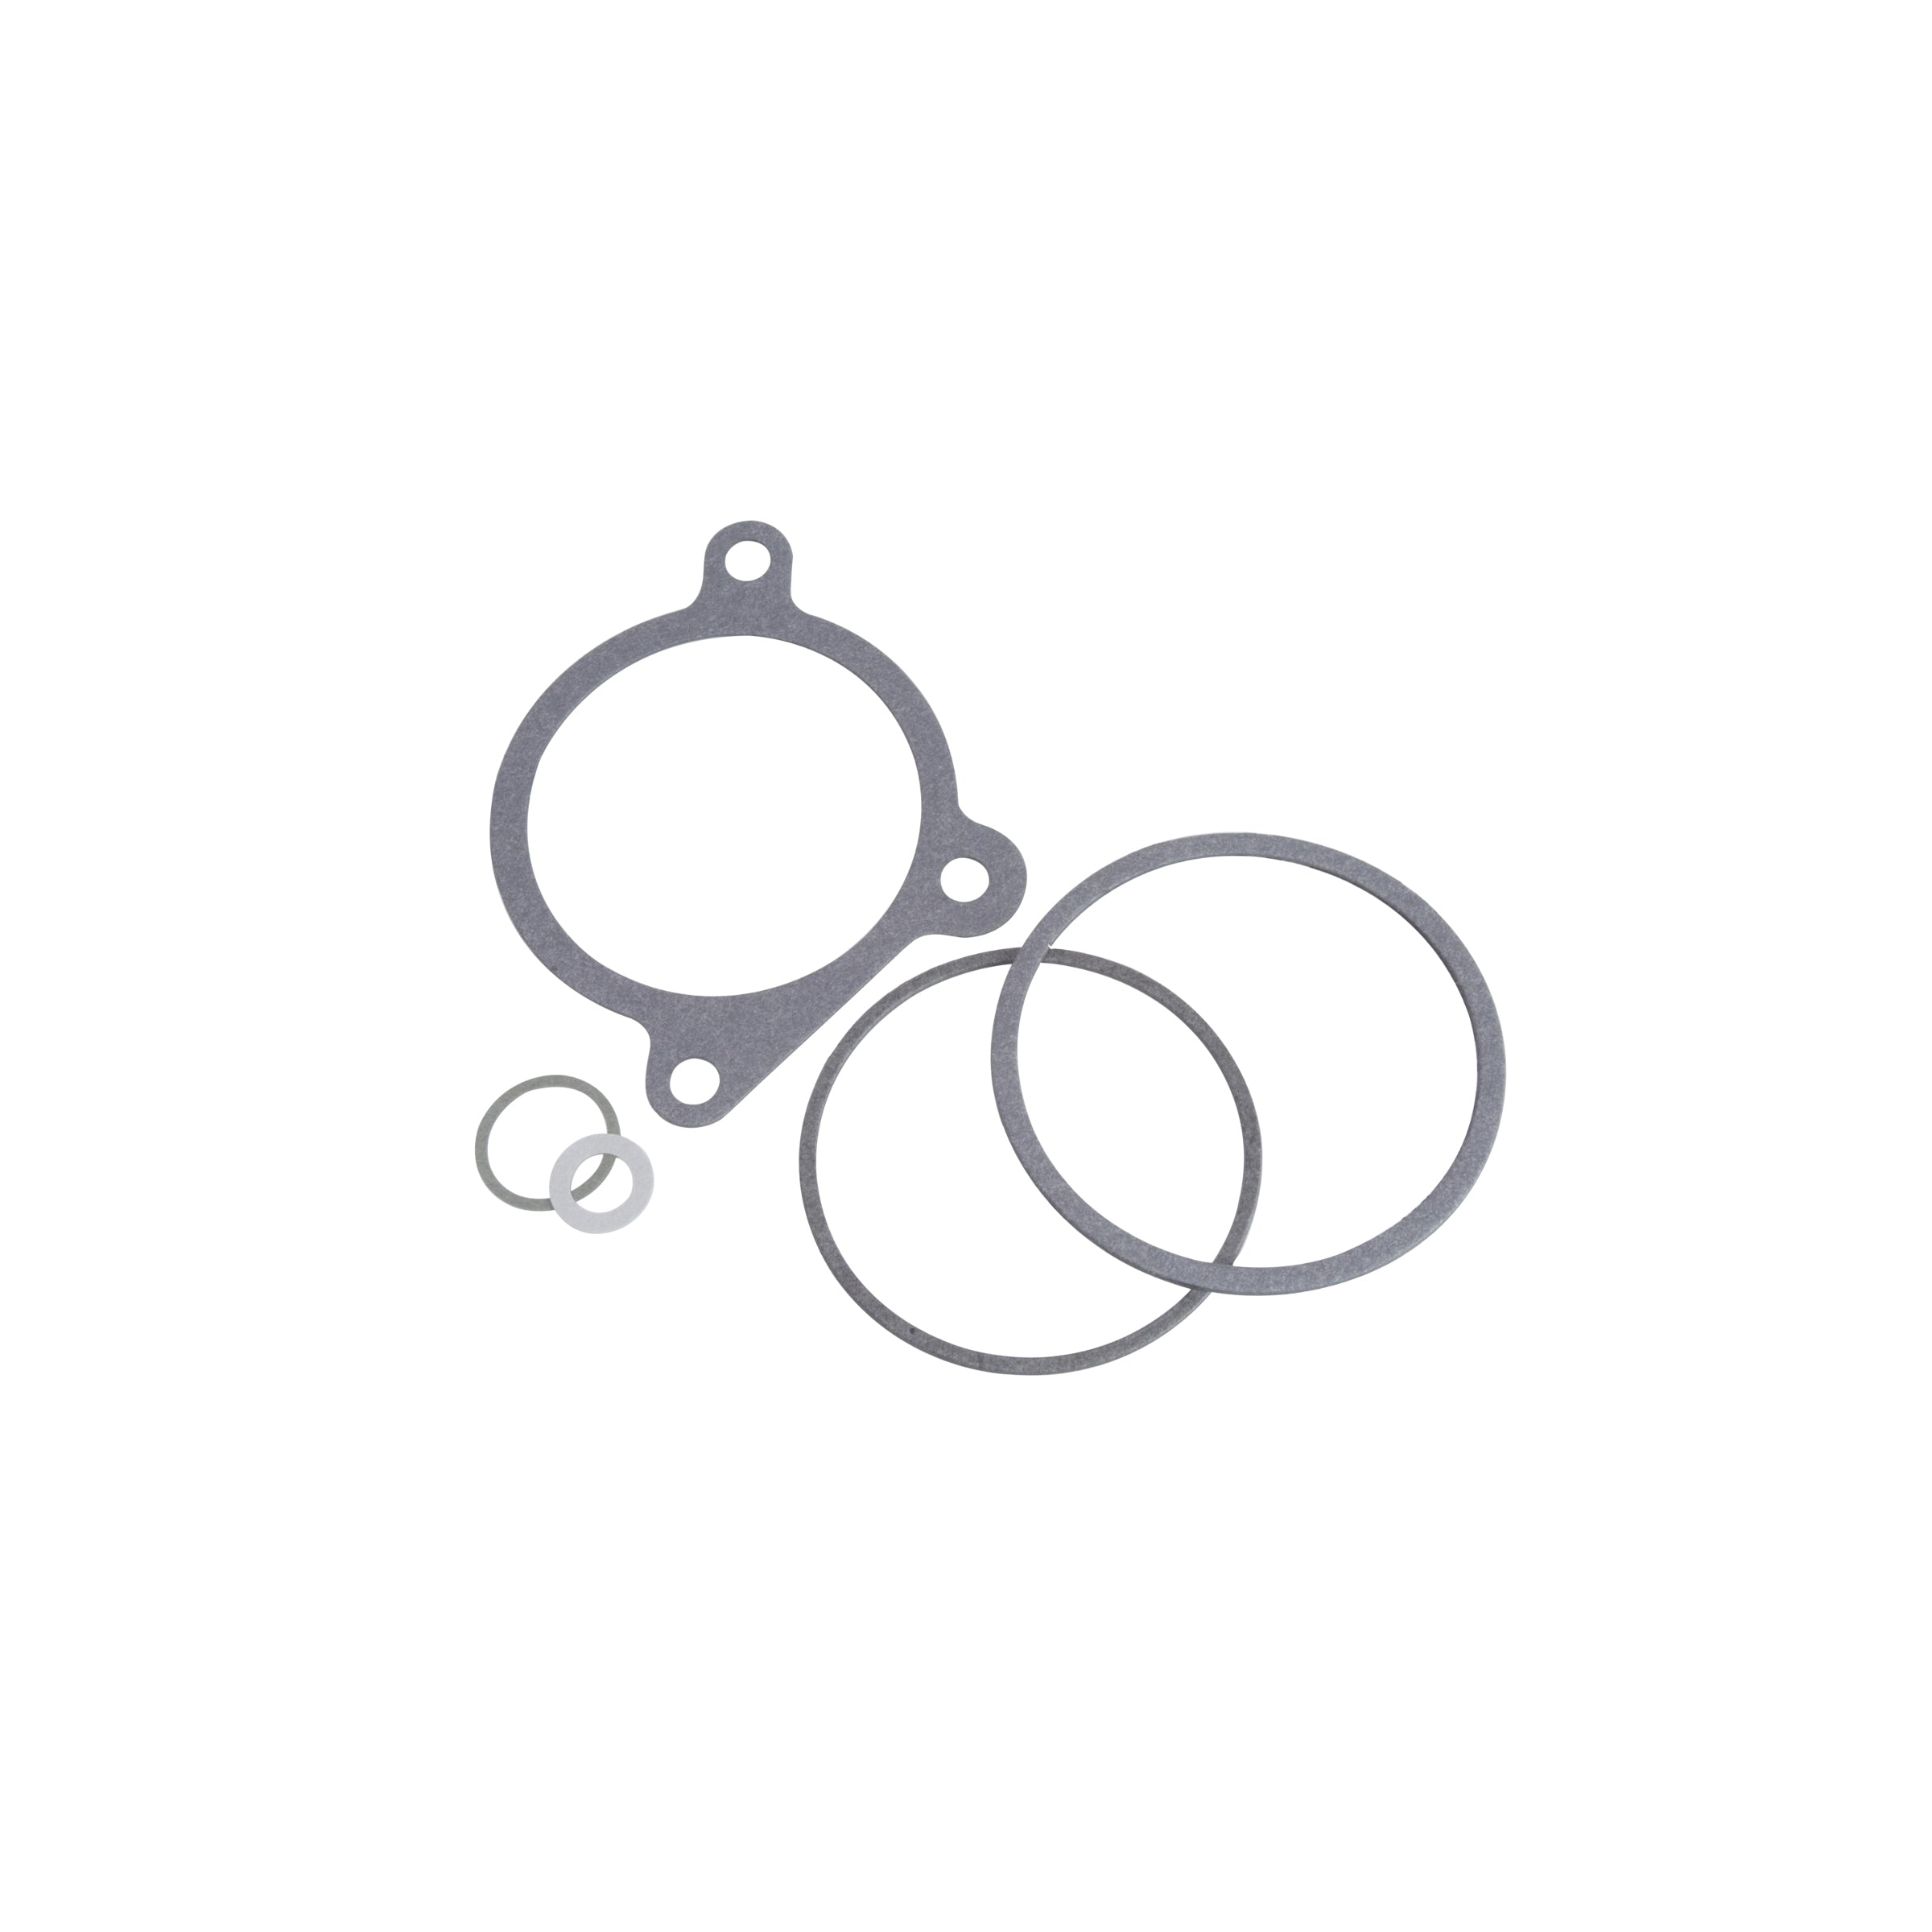 Distributor Gasket Set • 1942-48 Ford